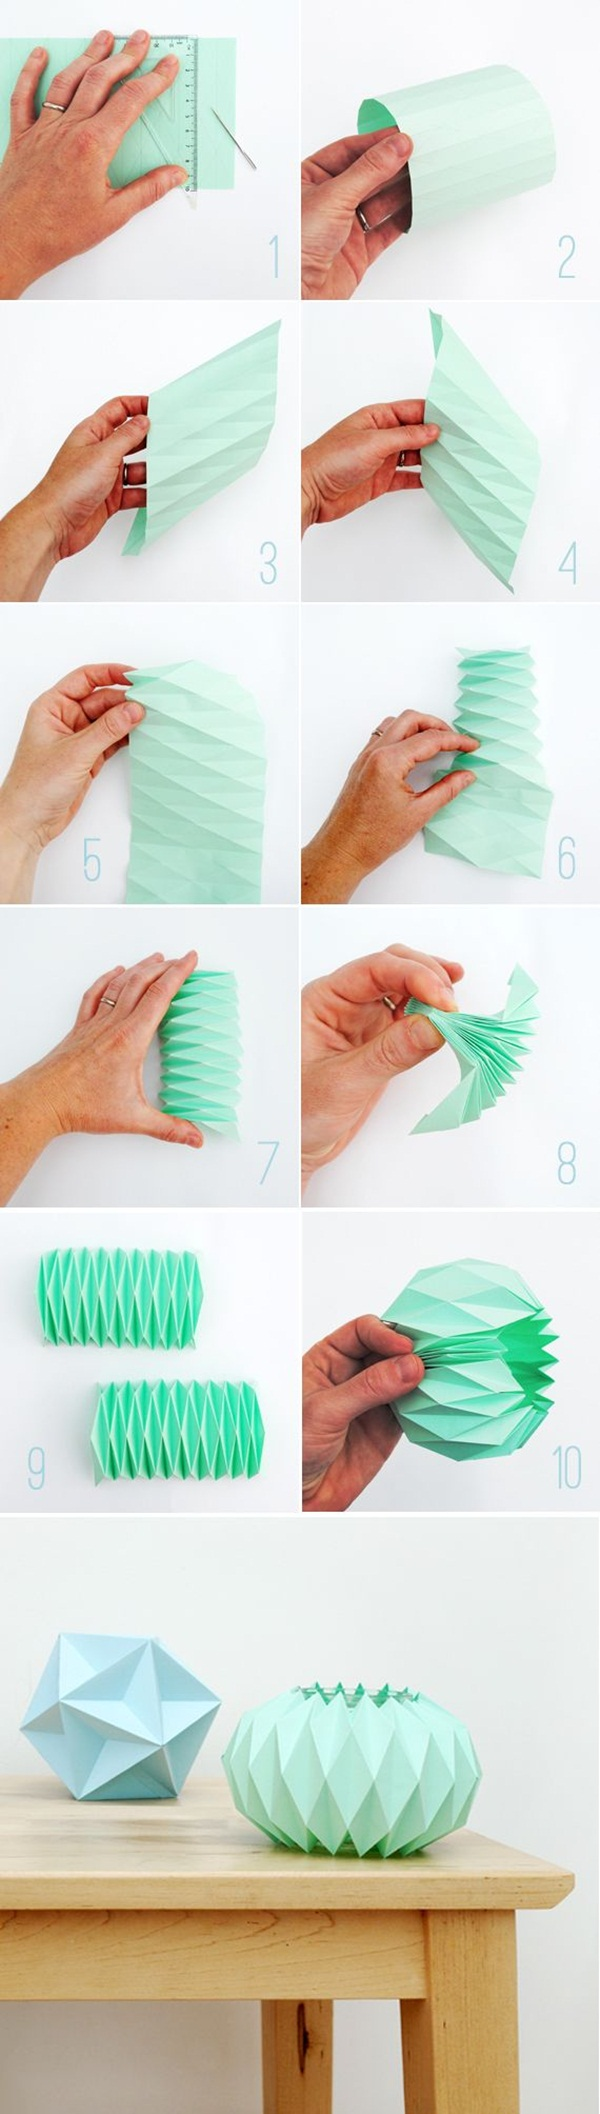 Paper Craft Ideas6